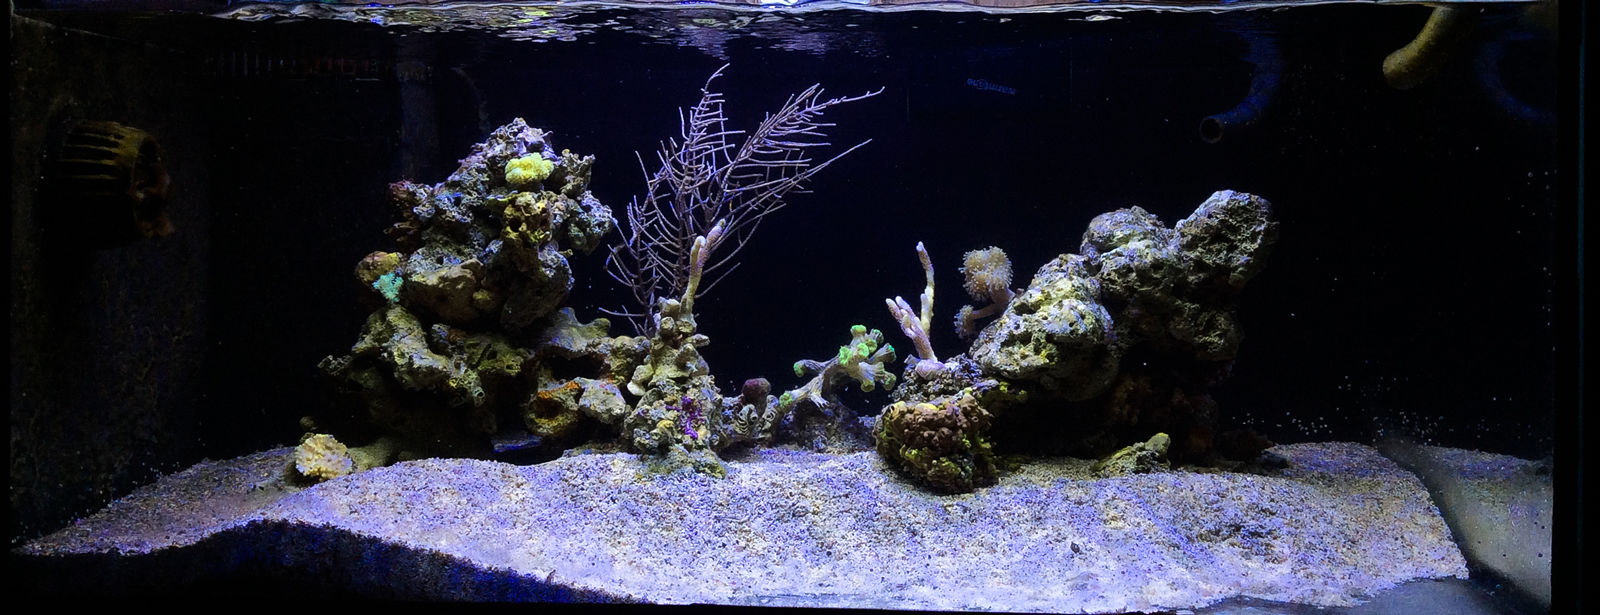 FTS Norway Reef - Vacation Reef